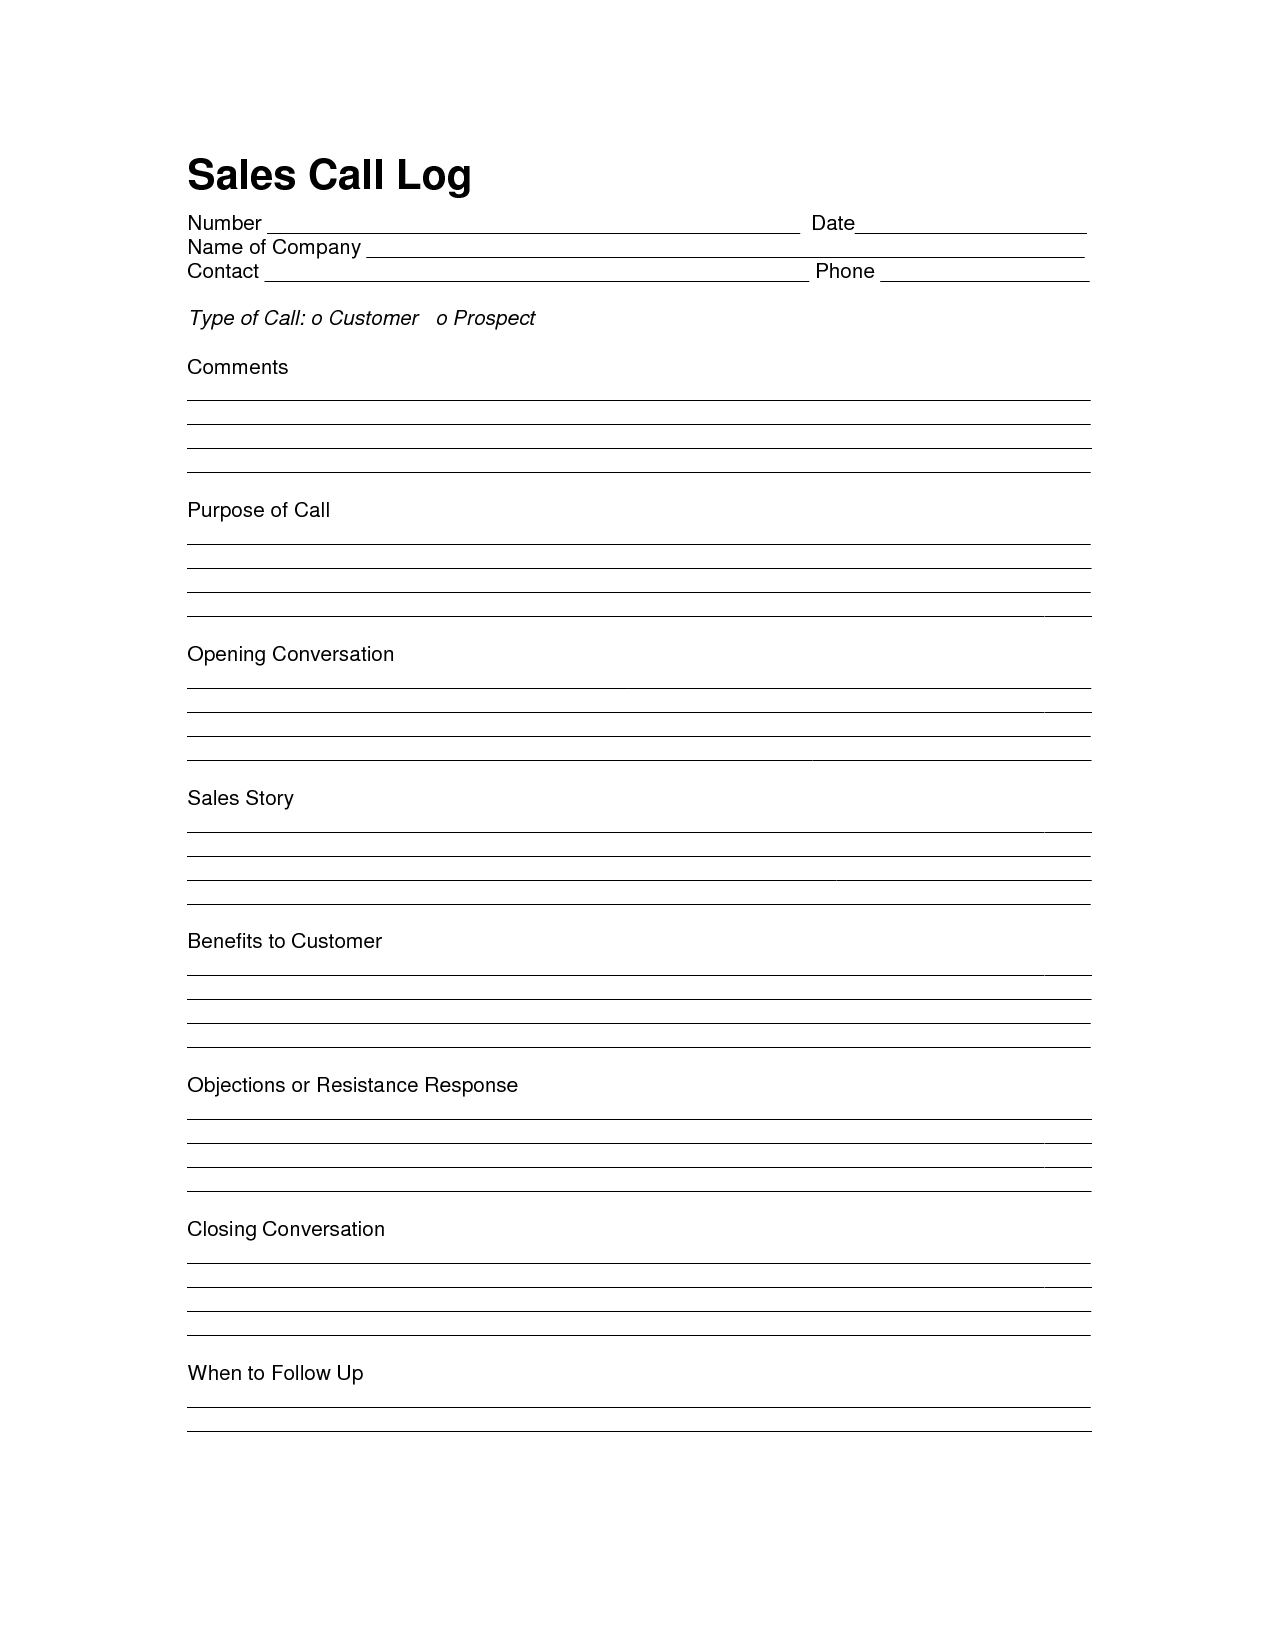 free applicant tracking spreadsheet download